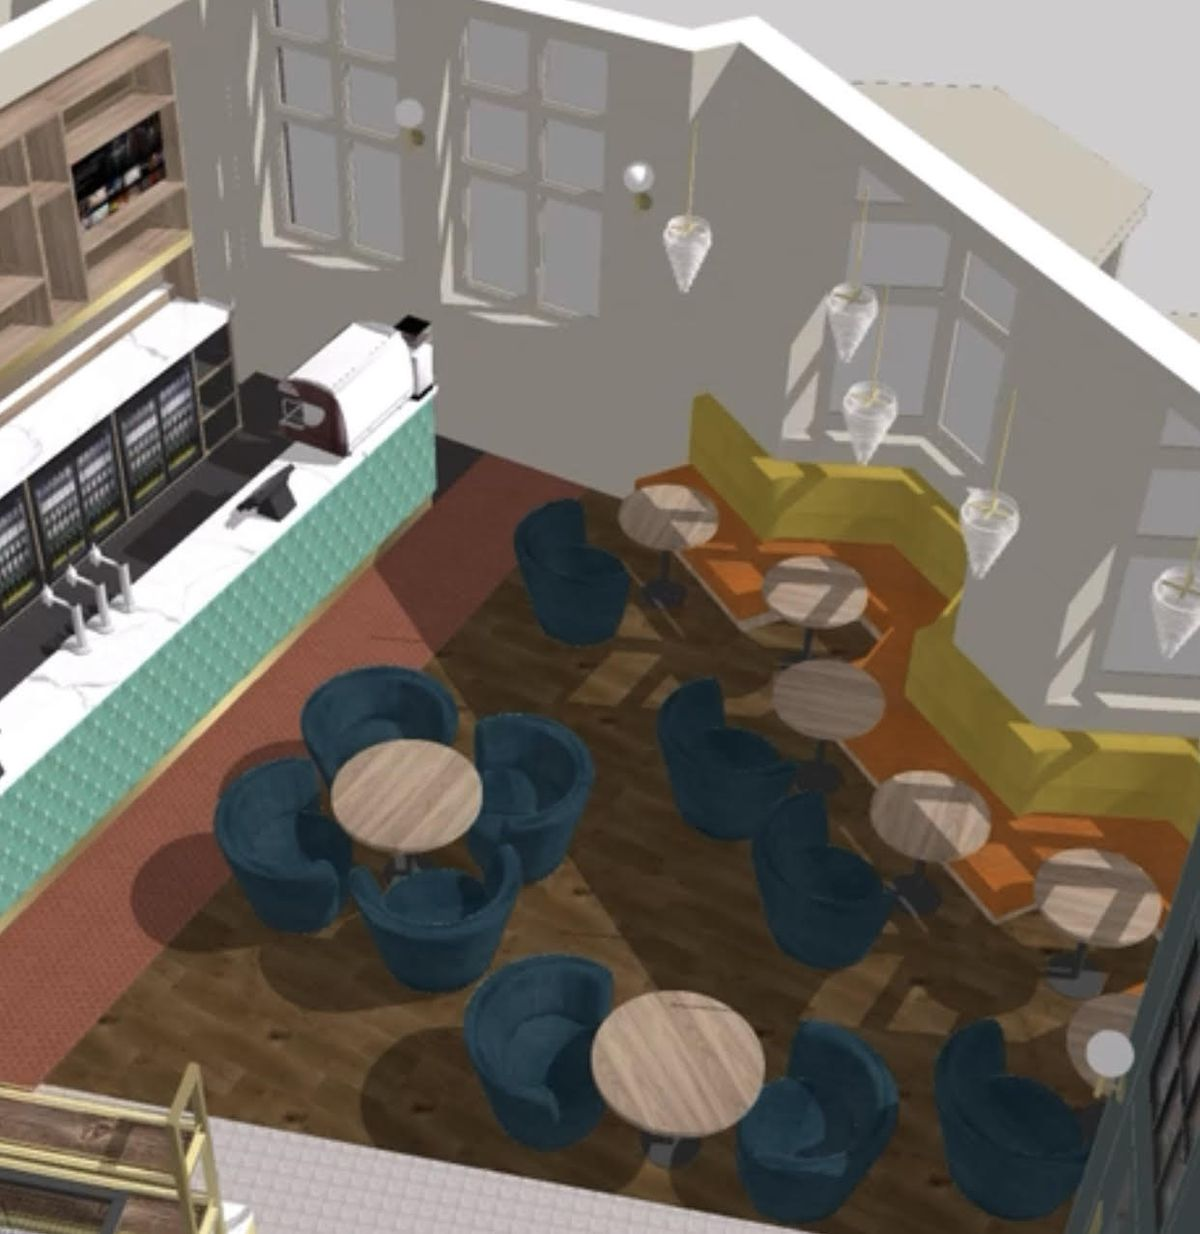 Artist impression of what the inside of the Soho Tavern in Walsall will look like. Photo: Soho Tavern Group